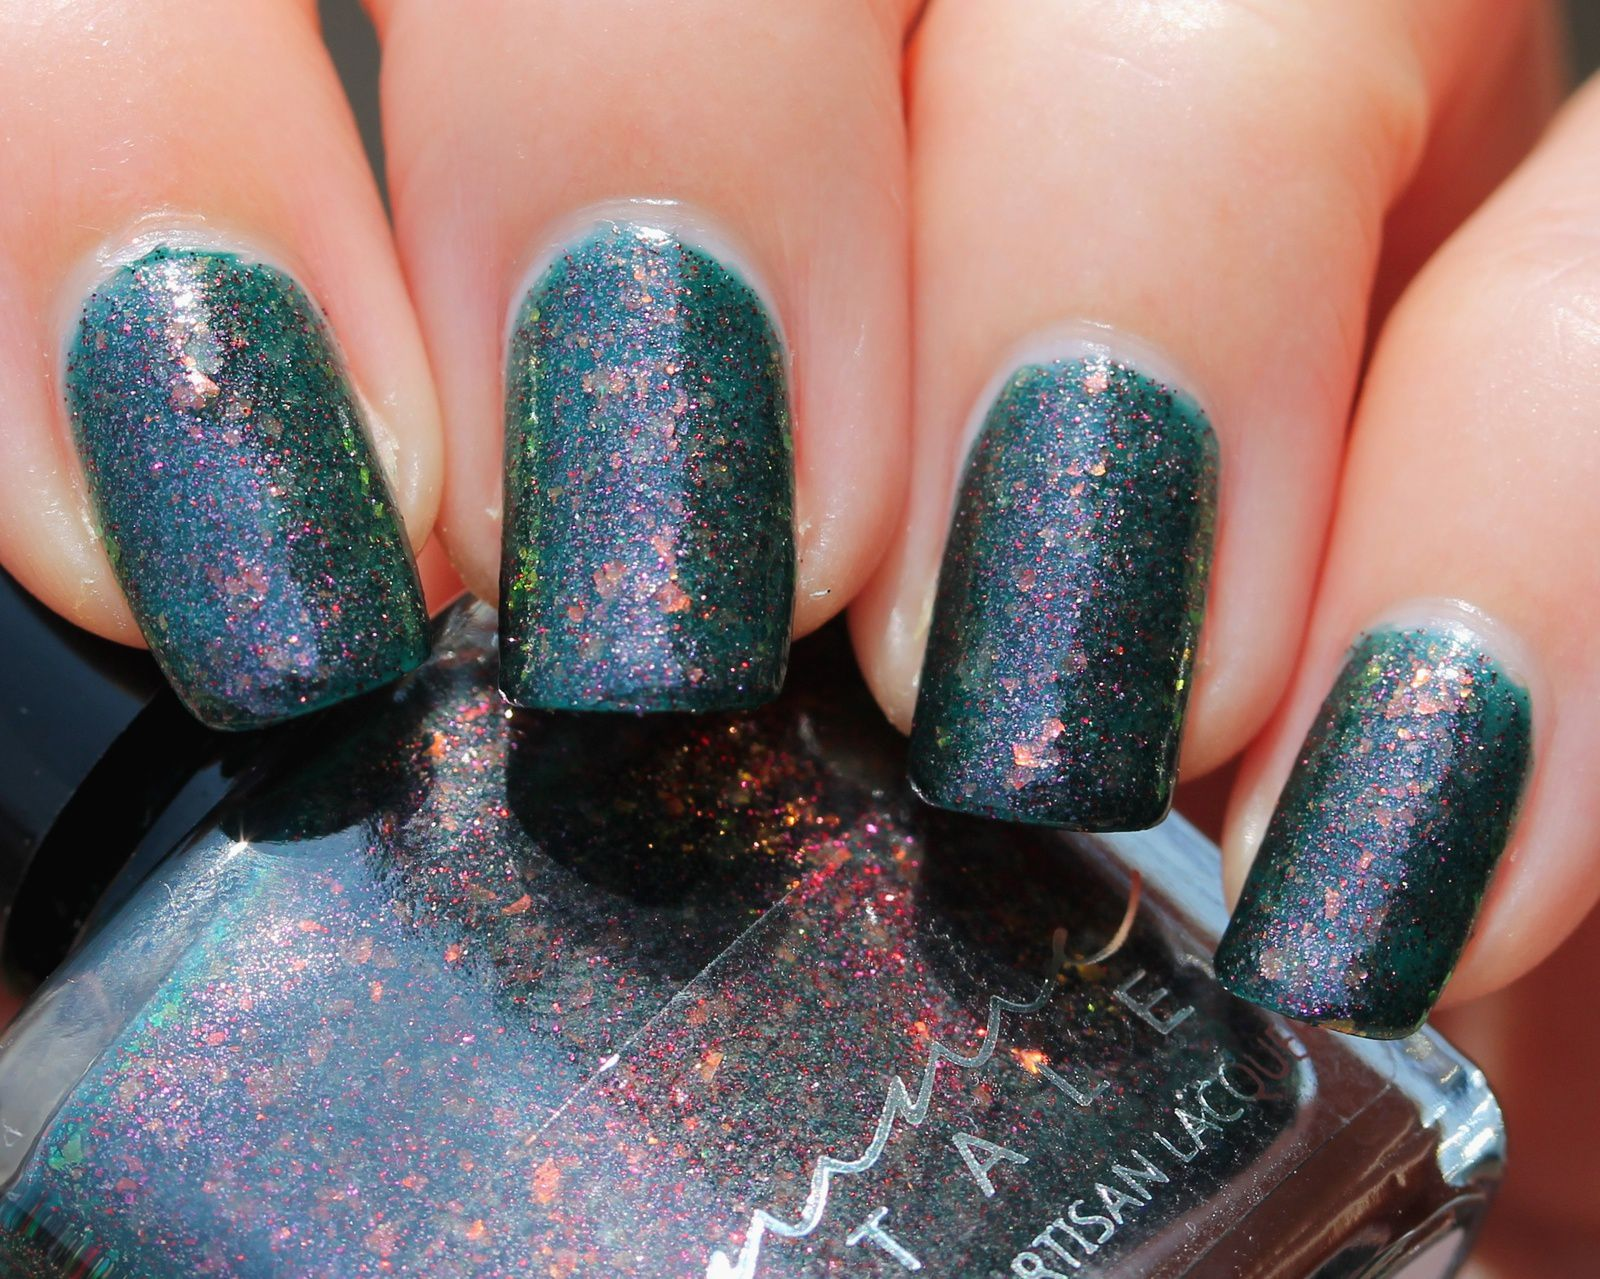 Femme Fatale Cosmetics - Mad as a Hatter (3 coats, no top coat)